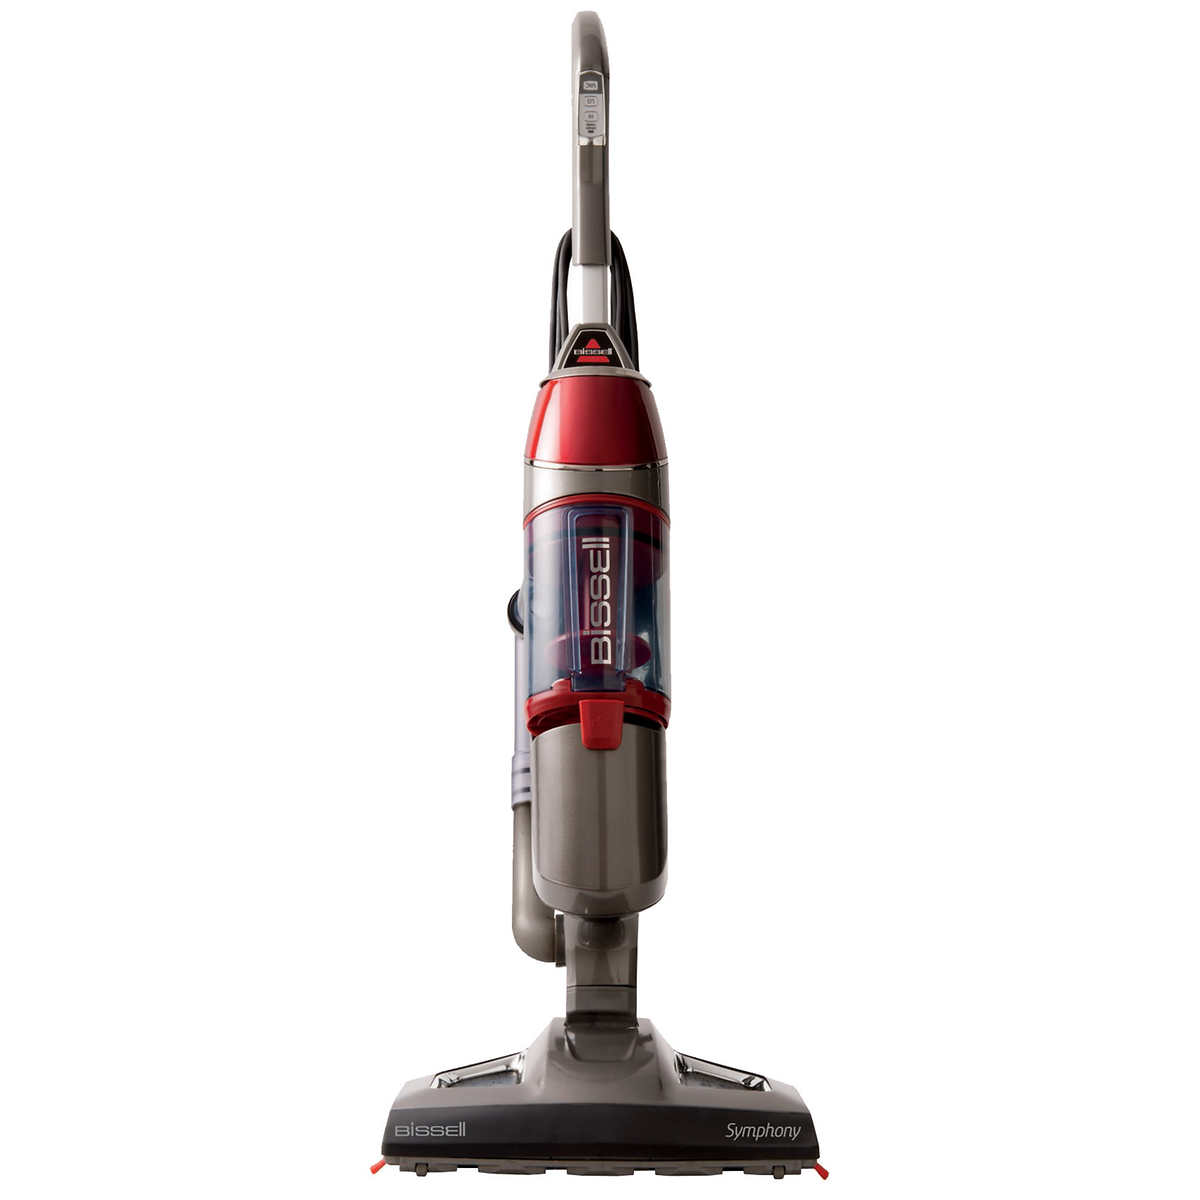 Bissell symphony complete all in one vacuum and steam mop with steam boost technology